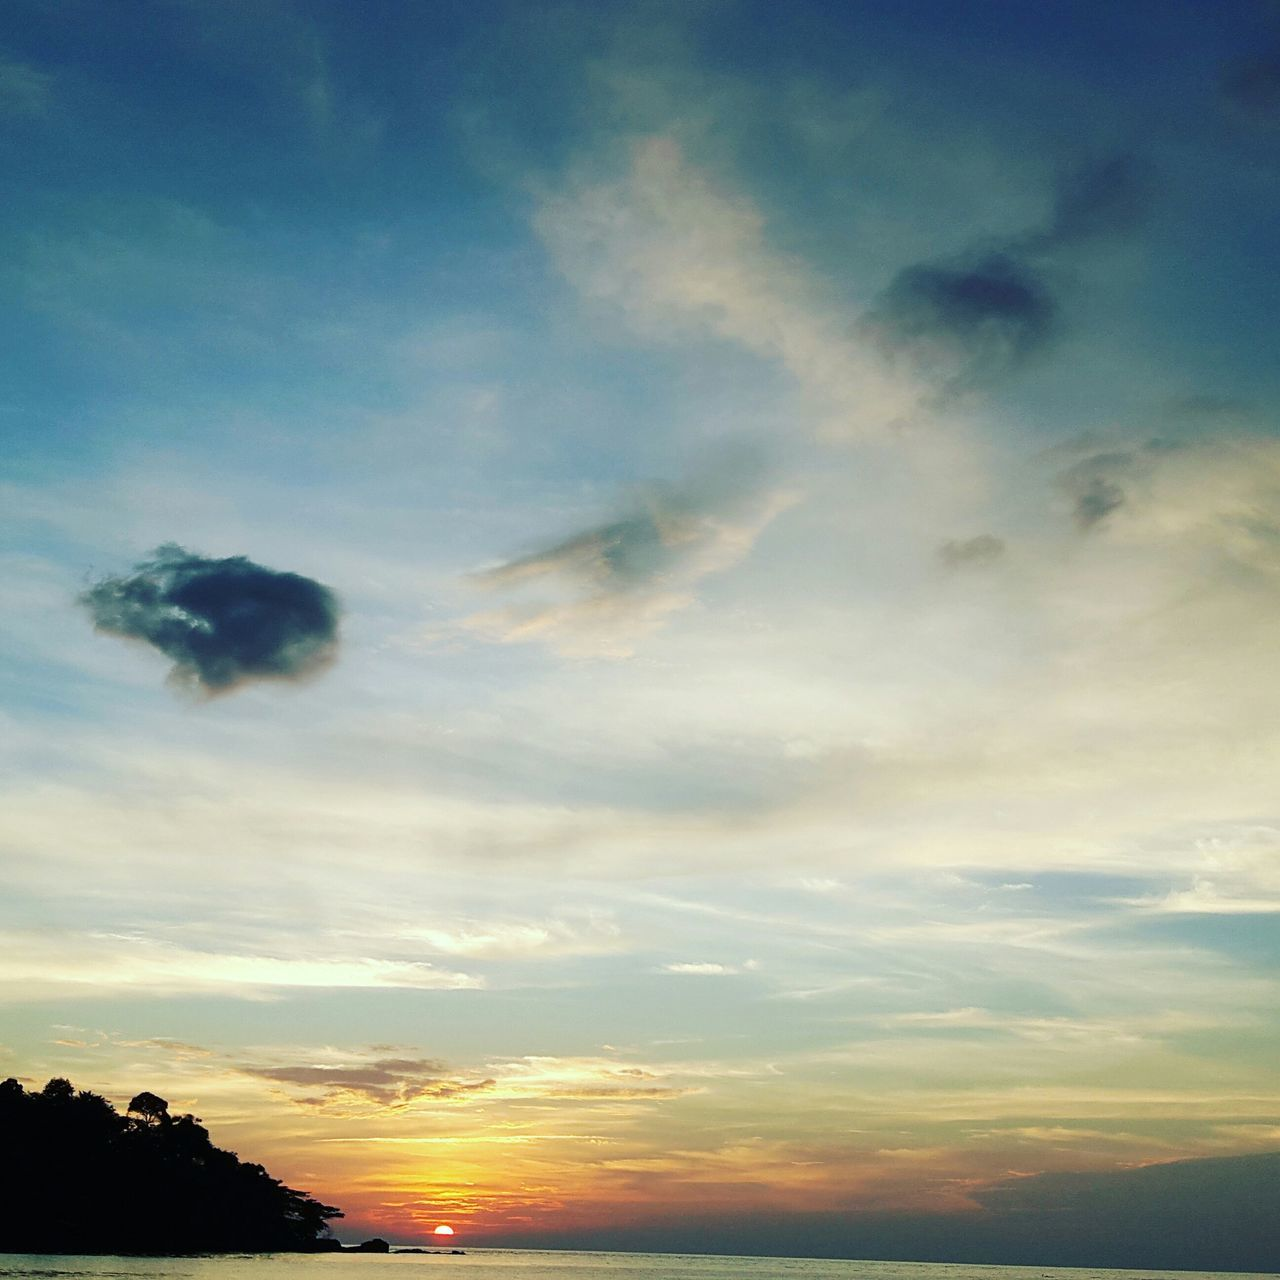 sky, sunset, cloud - sky, beauty in nature, nature, scenics, silhouette, tranquil scene, tranquility, no people, low angle view, outdoors, tree, day